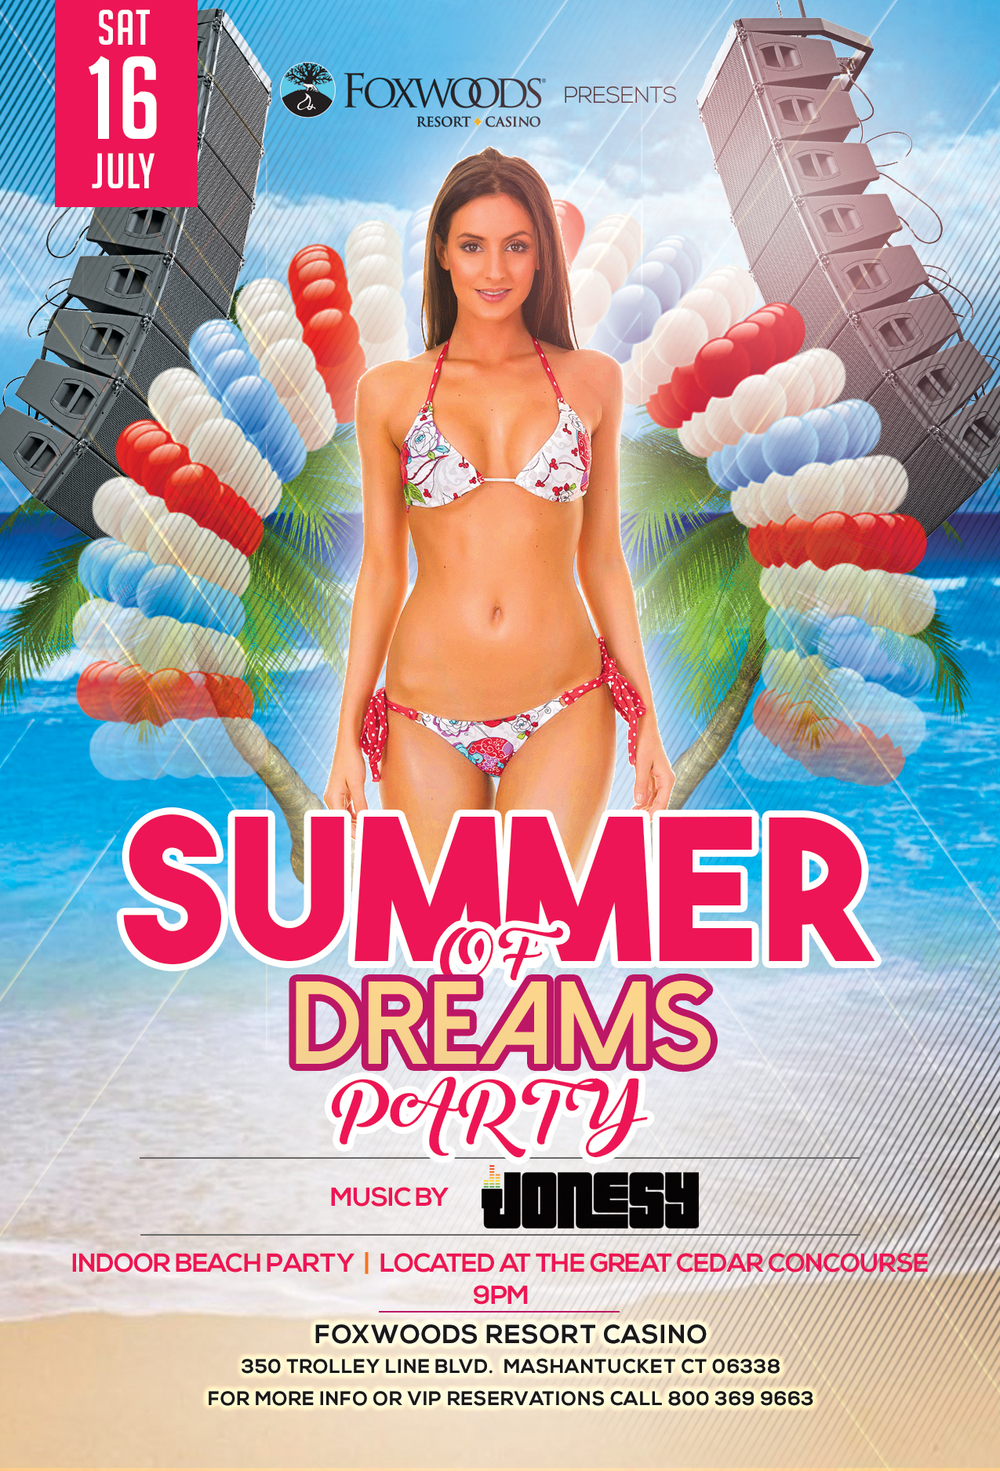 SAT. JULY 16TH JOIN US AT FOXWOODS RESORT CASINO FOR THE SUMMER OF DREAMS PARTY.  LOCATED AT THE GREAT CEDAR CONCOURSE, MUSIC BY JONESY BEGINS AT 9PM AND GOES UNTIL 1AM.  HOPE TO SEE YOU ALL THERE!